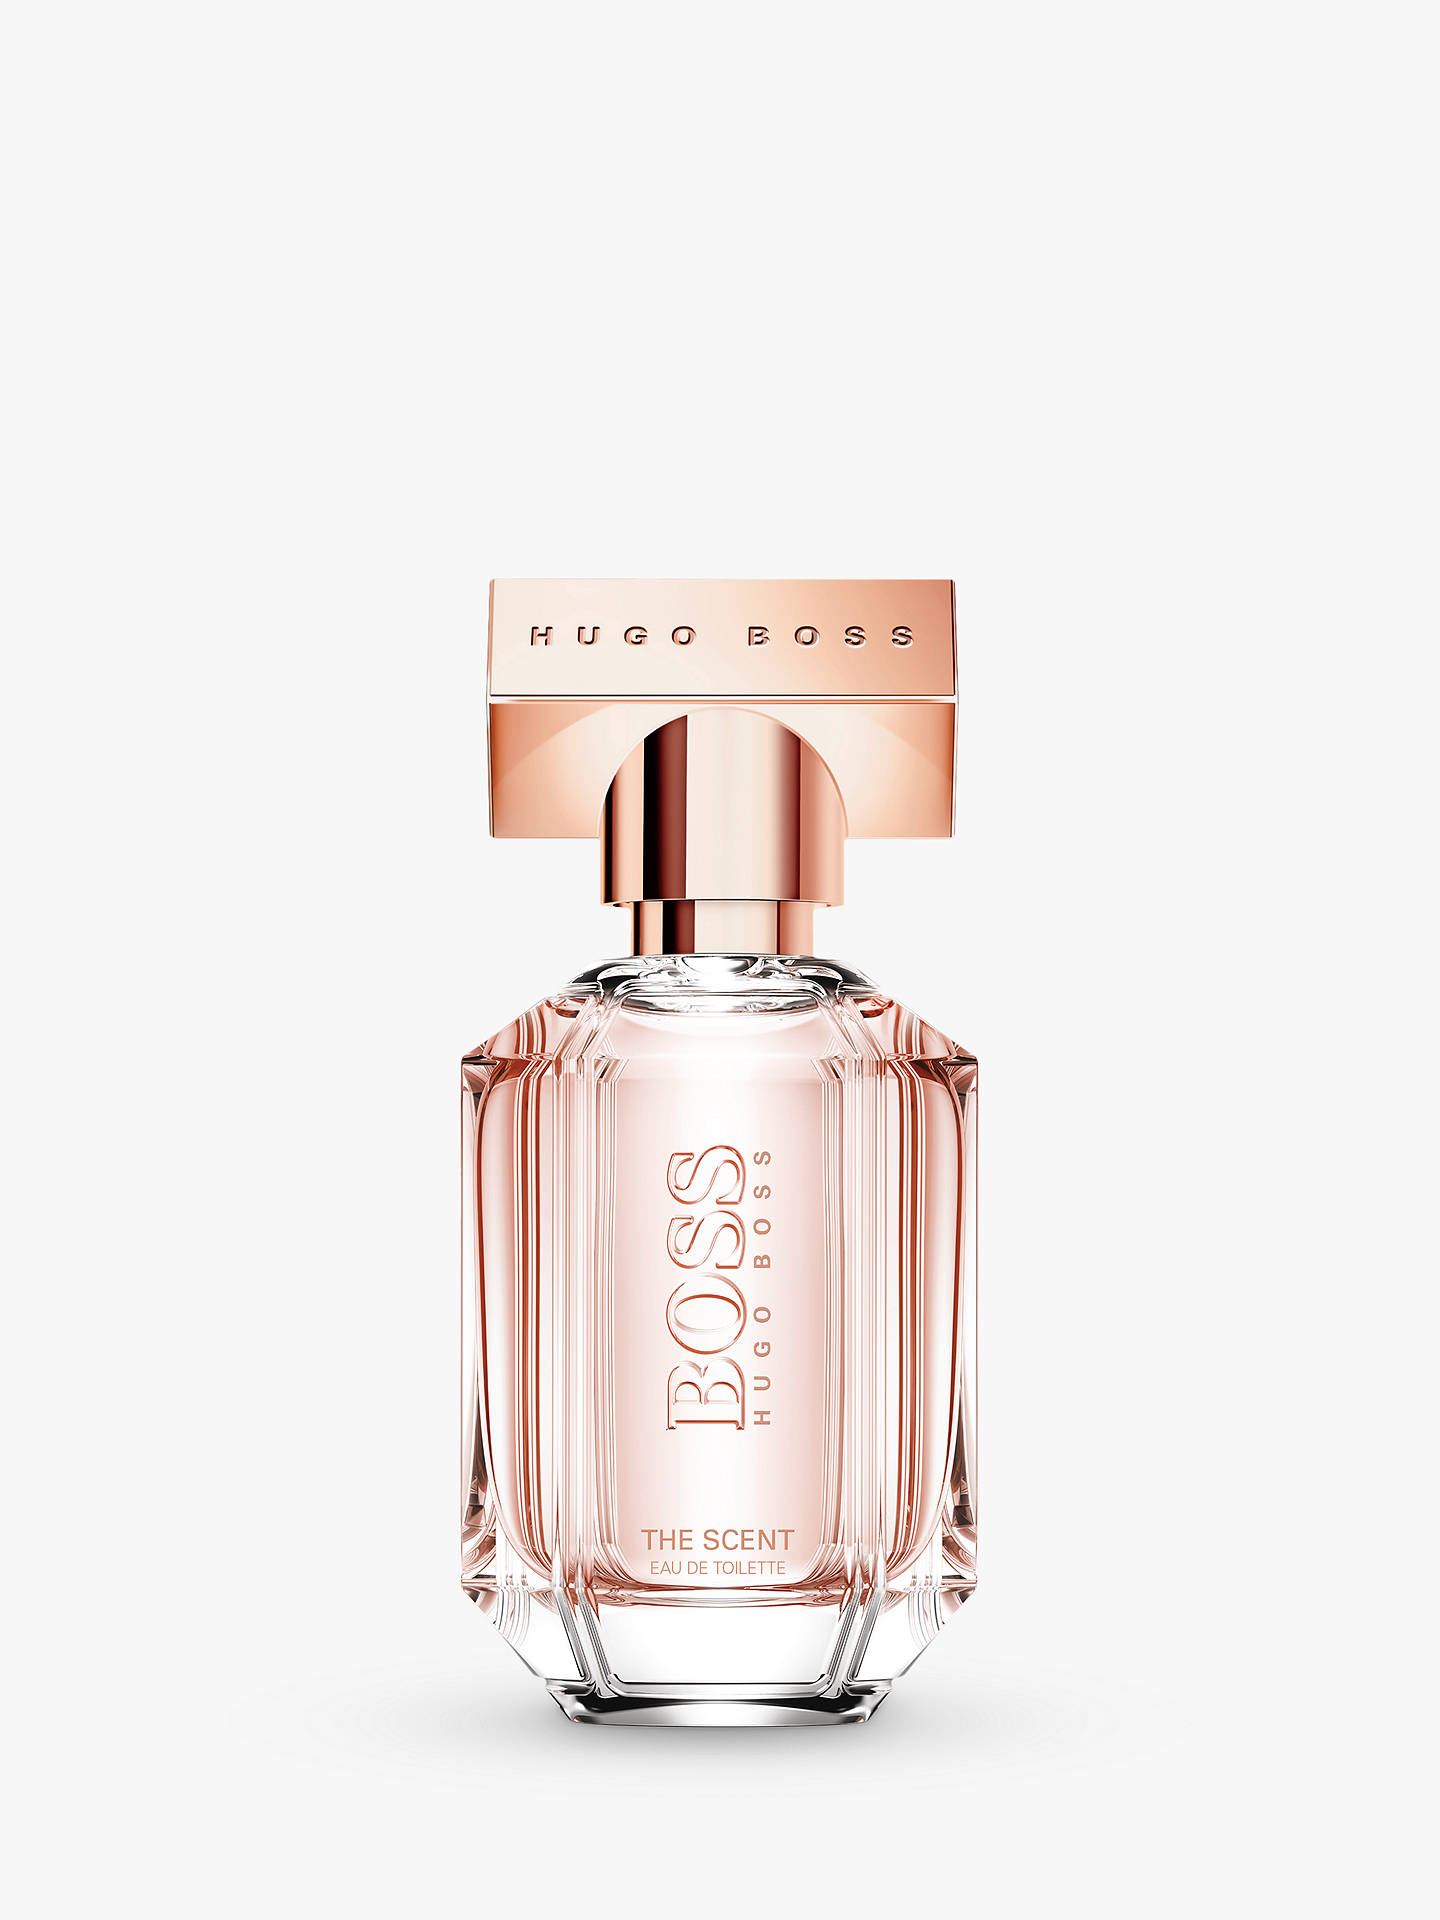 BuyHUGO BOSS BOSS The Scent For Her 54e659c996bb8